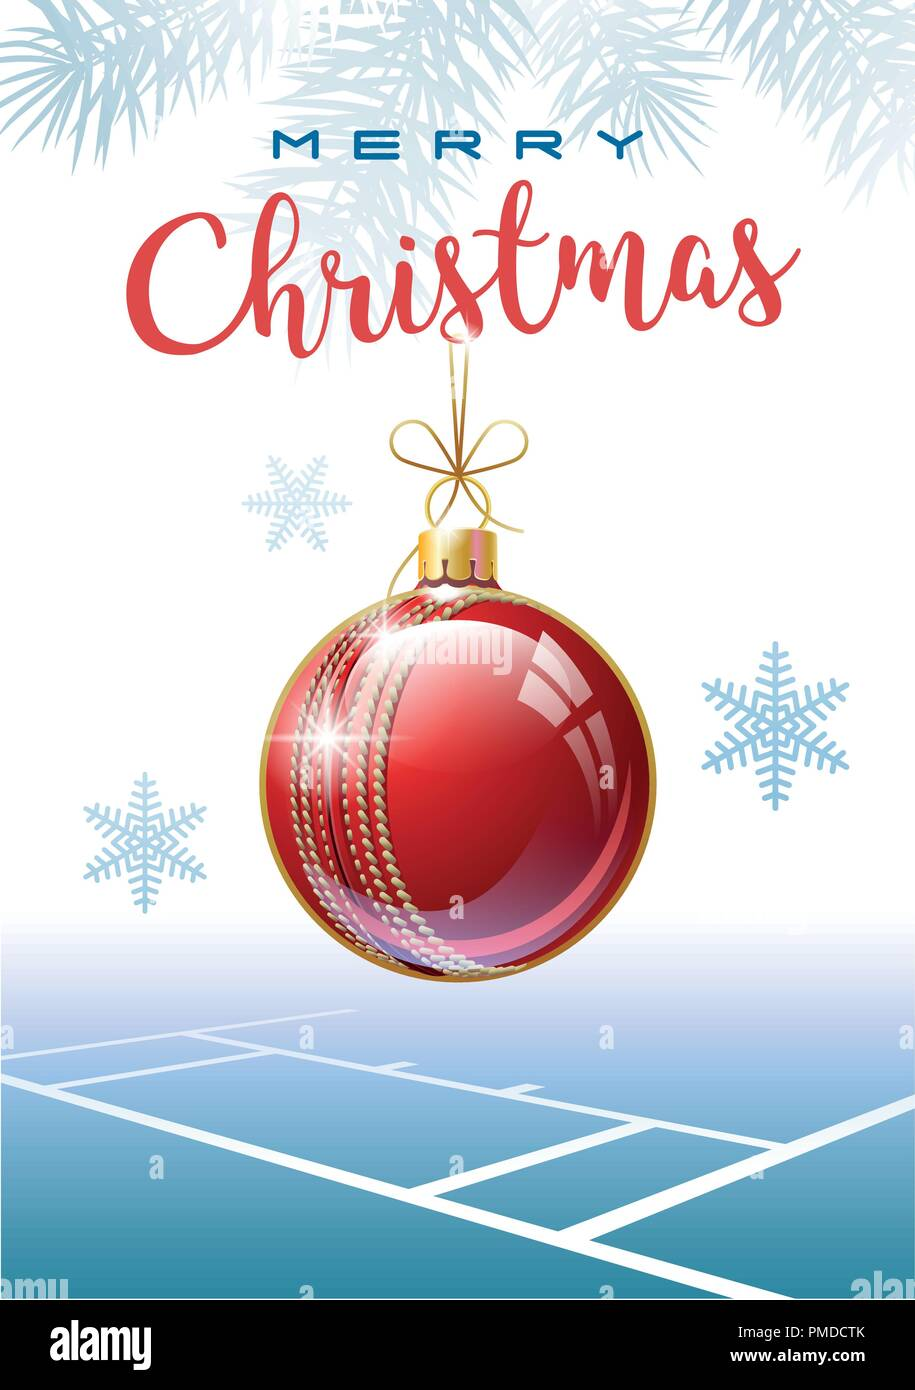 Merry Christmas Sports Greeting Card Realistic Cricket Ball In The